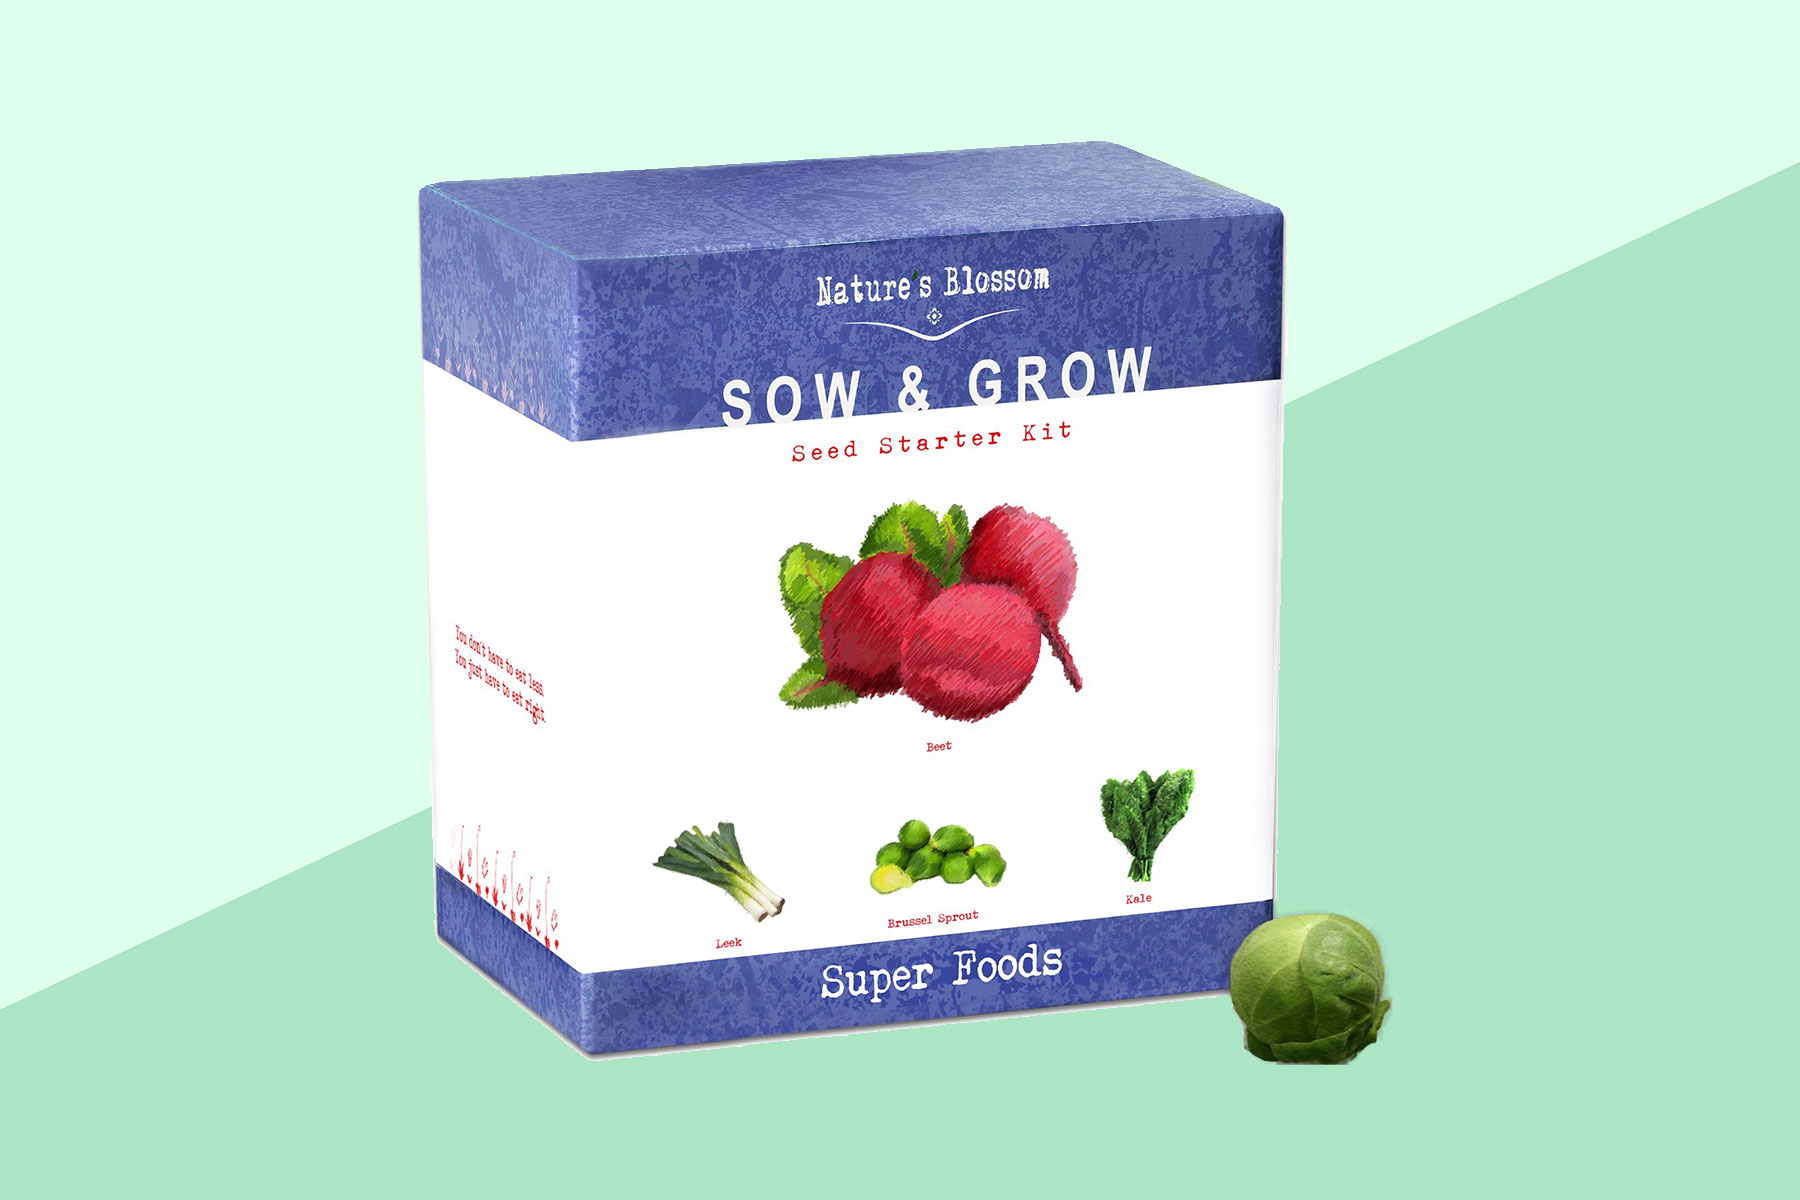 The Nature's Blossom Sow & Grow Seed Starter Kits